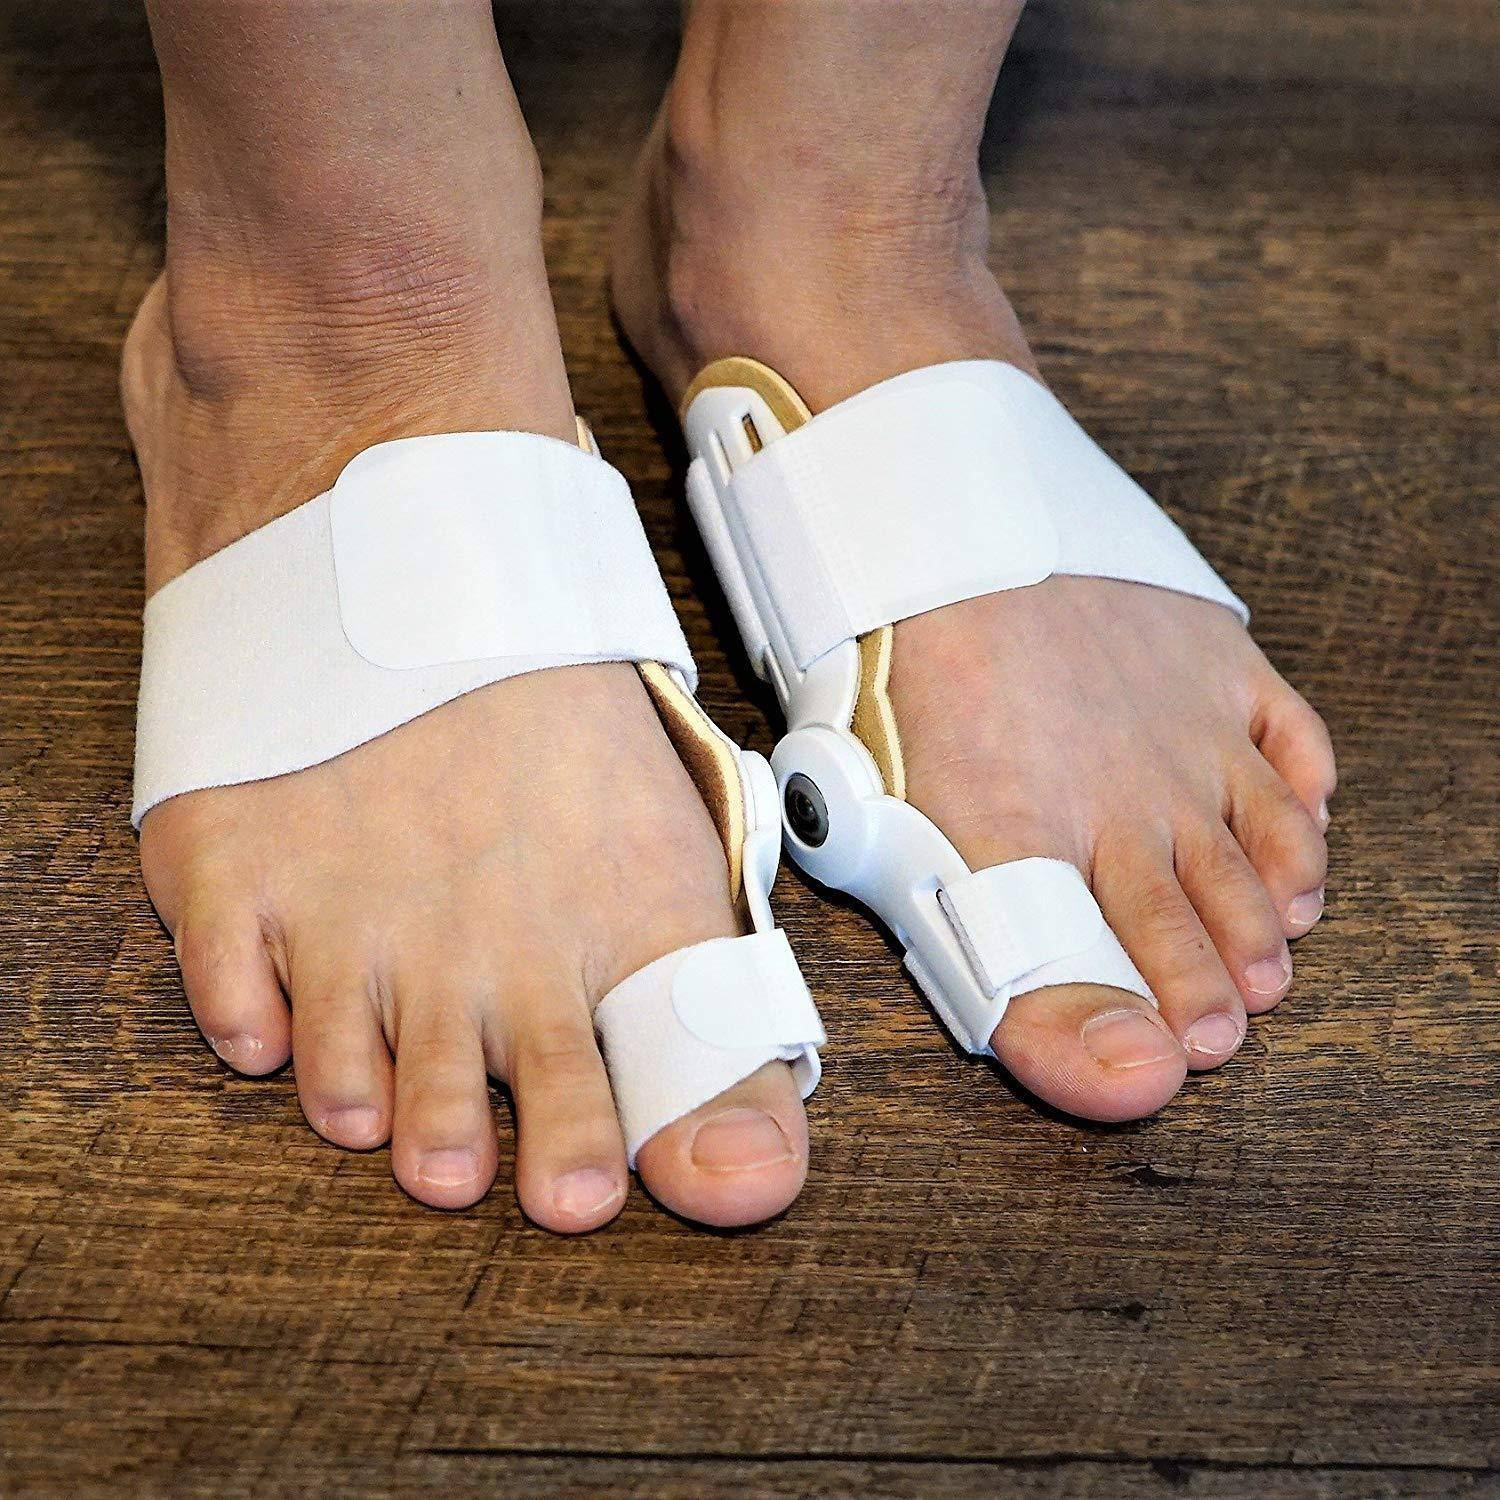 Orthopedic Bunion Corrector – Bunion Relief Splint